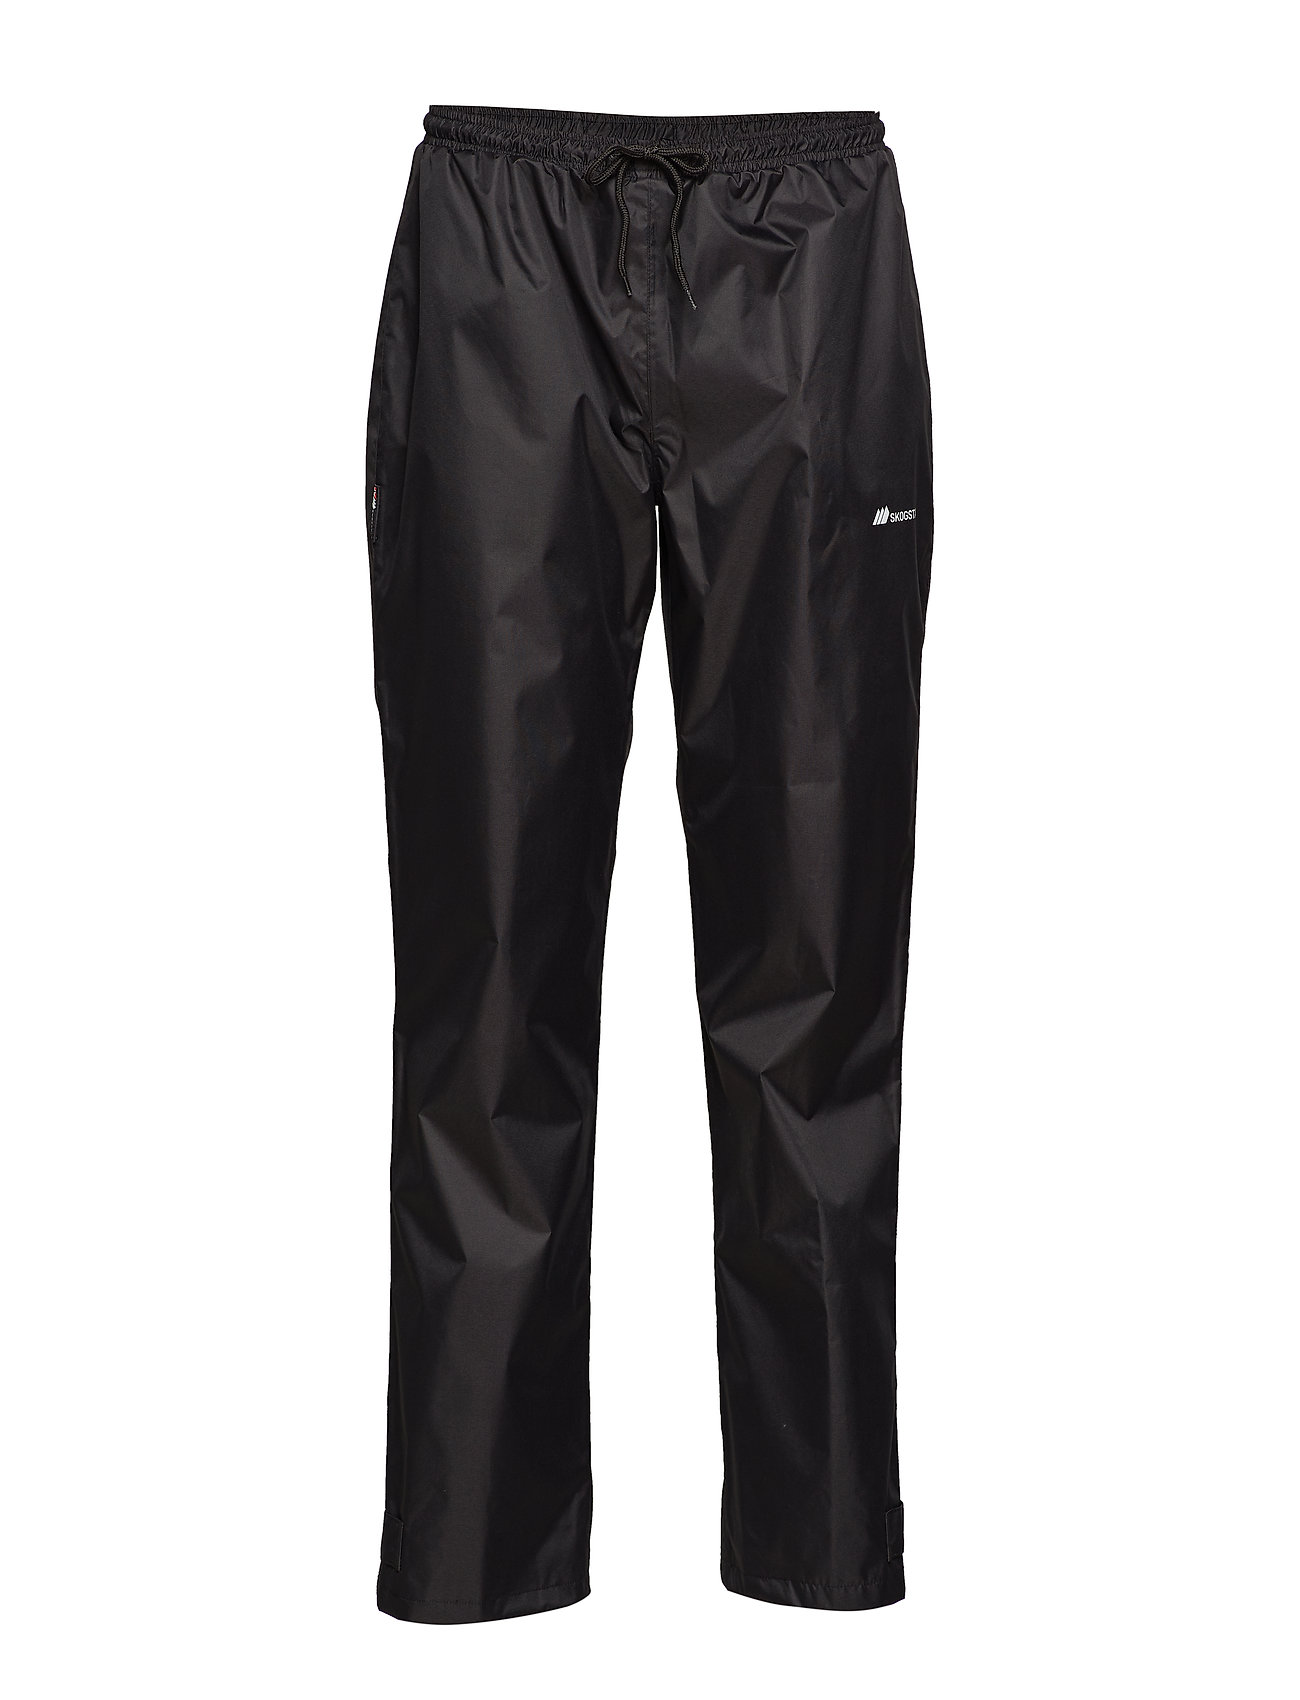 Skogstad Møkster 2-Layer Technical Rainwear Trousers - BLACK